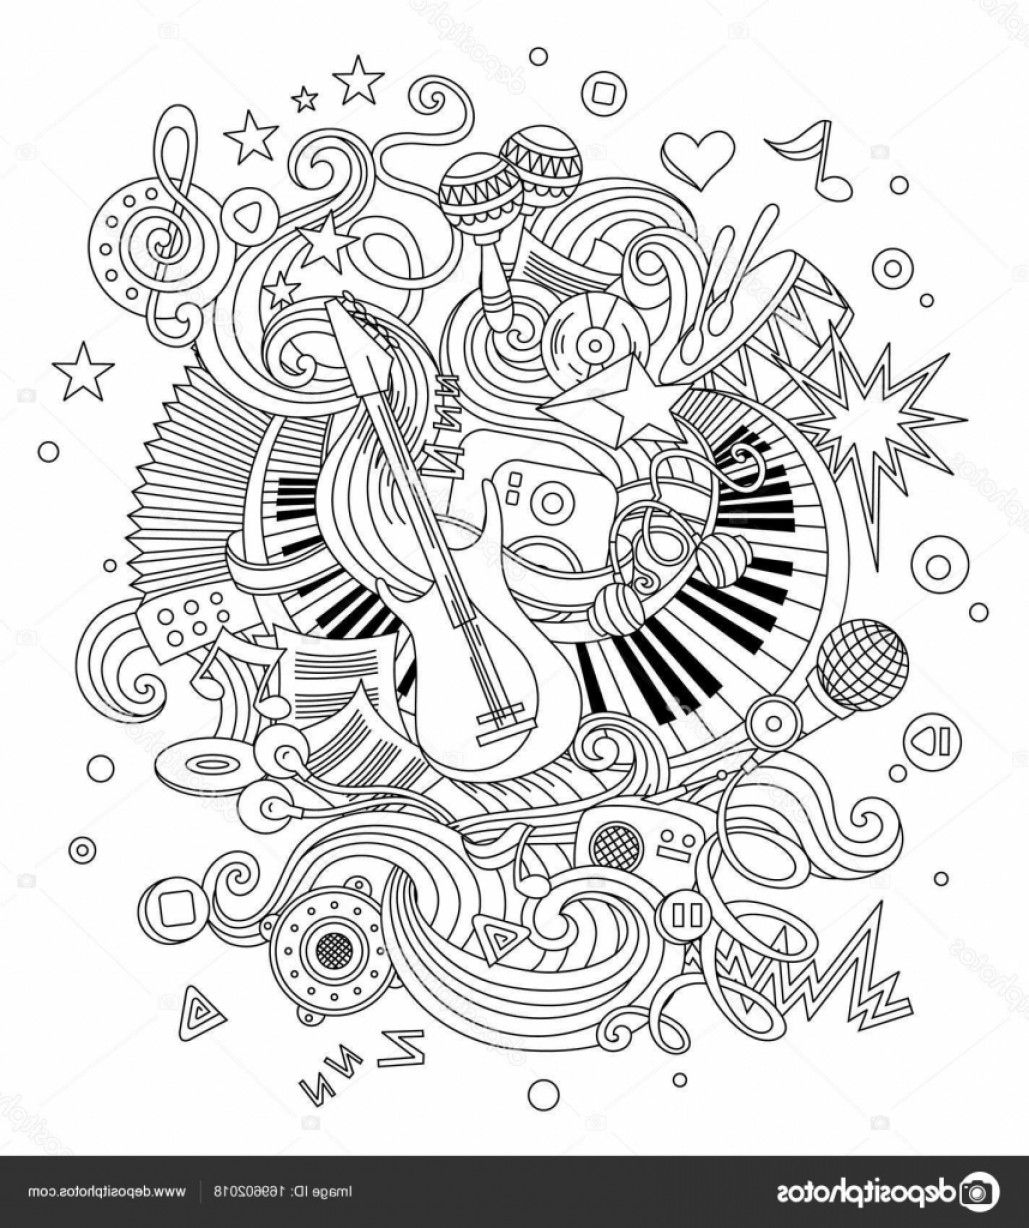 Musical Vector Artwork: Stock Illustration Abstract Music Background Collage With